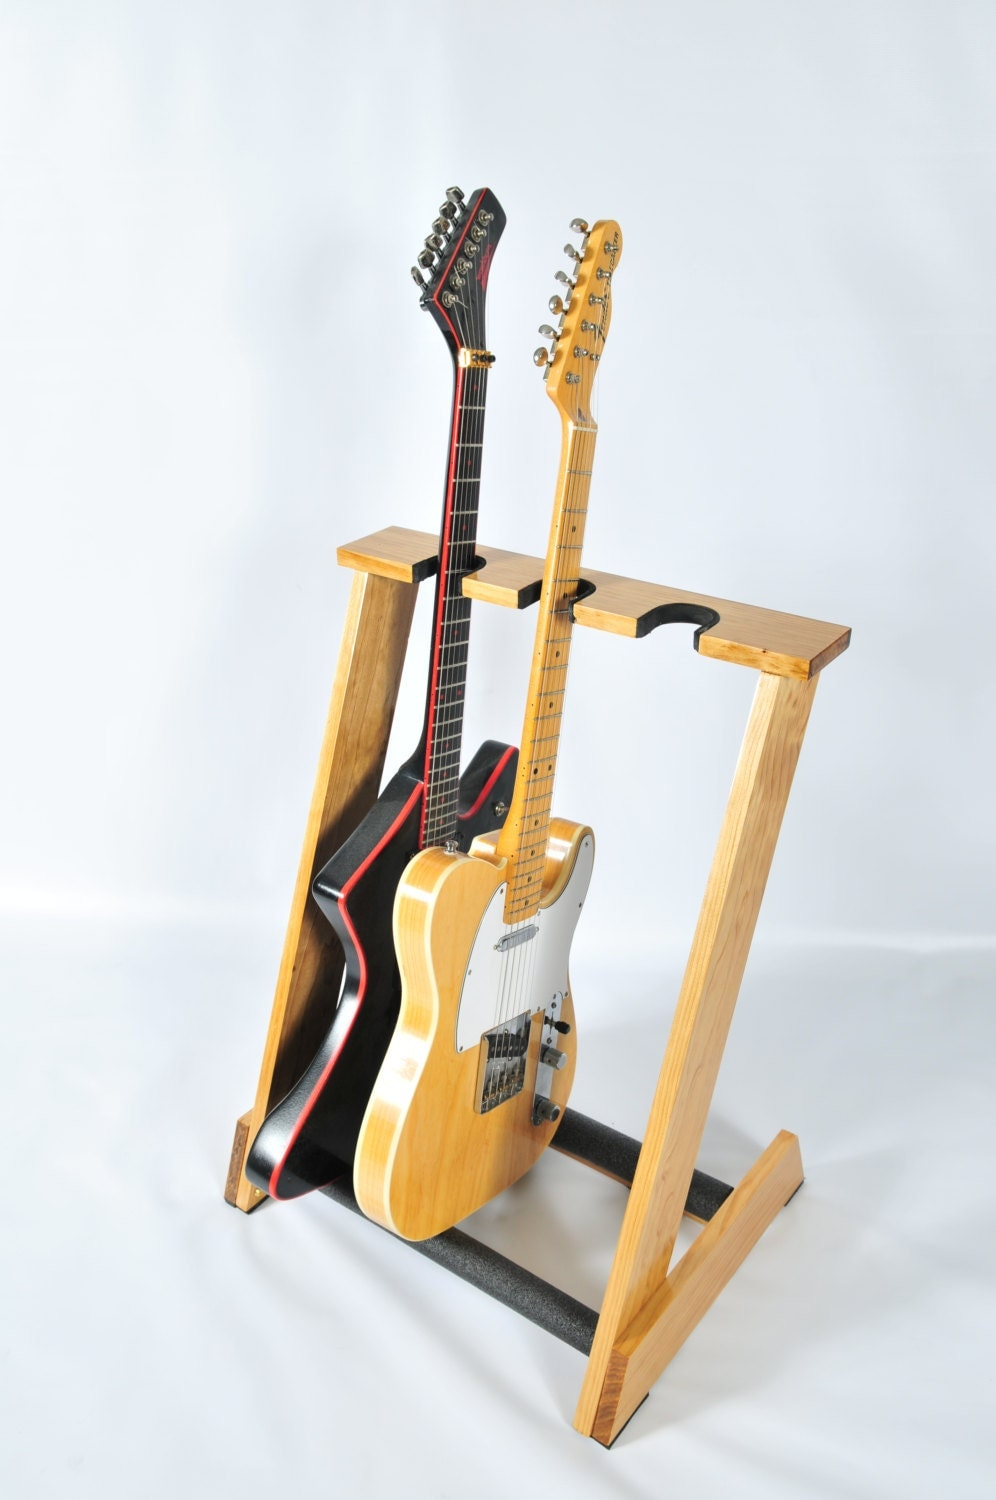 handcrafted wooden guitar stand from allwood stands display. Black Bedroom Furniture Sets. Home Design Ideas